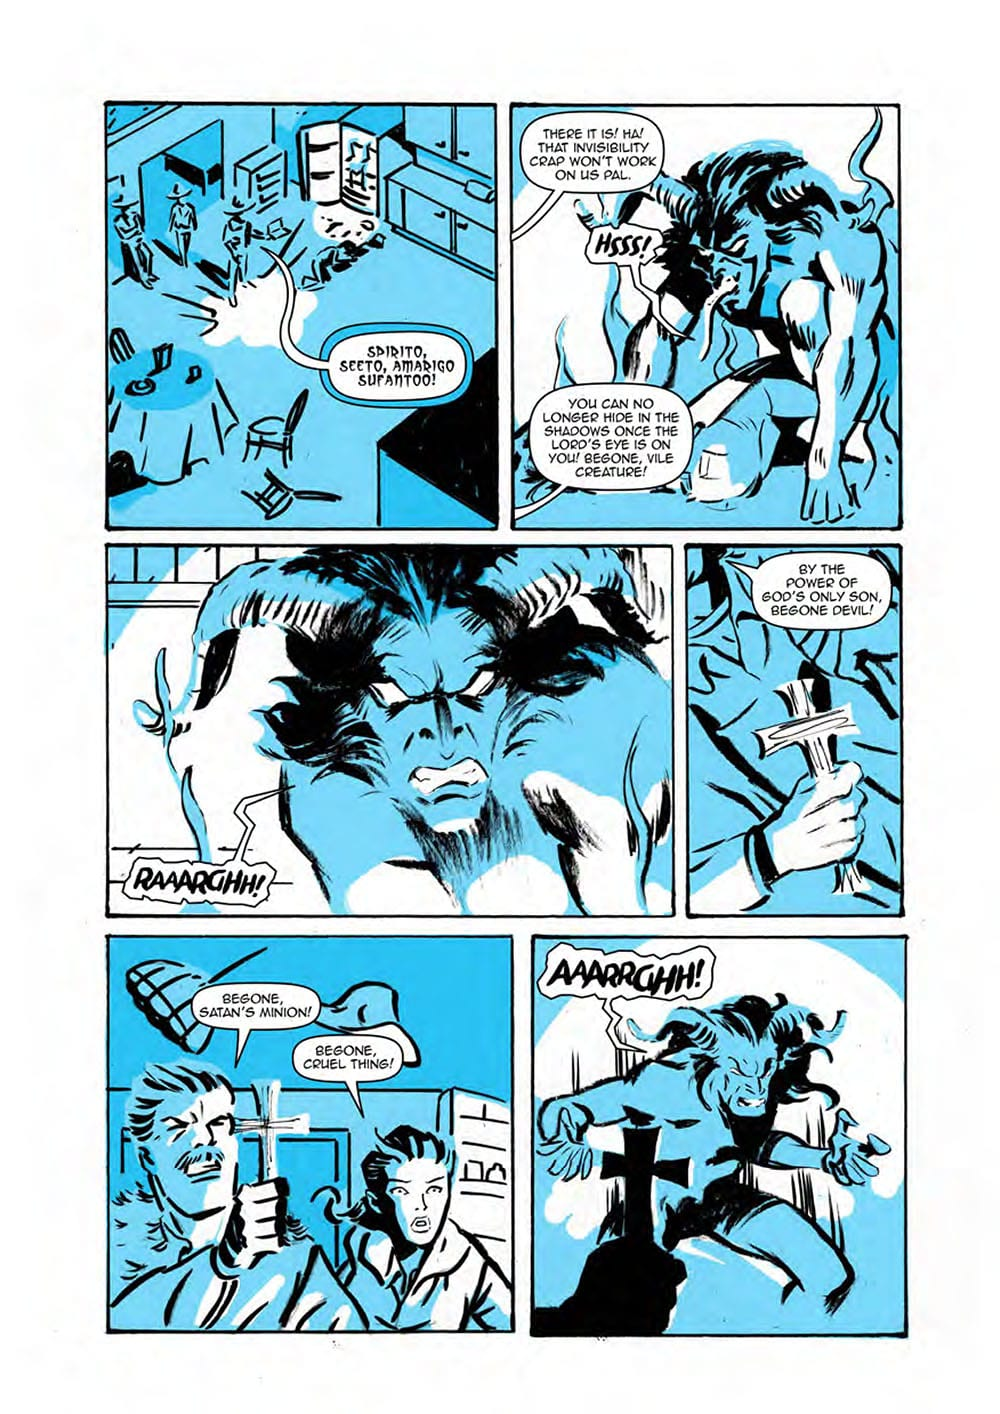 HEADLESS Issue One Page Four: Scout Comics